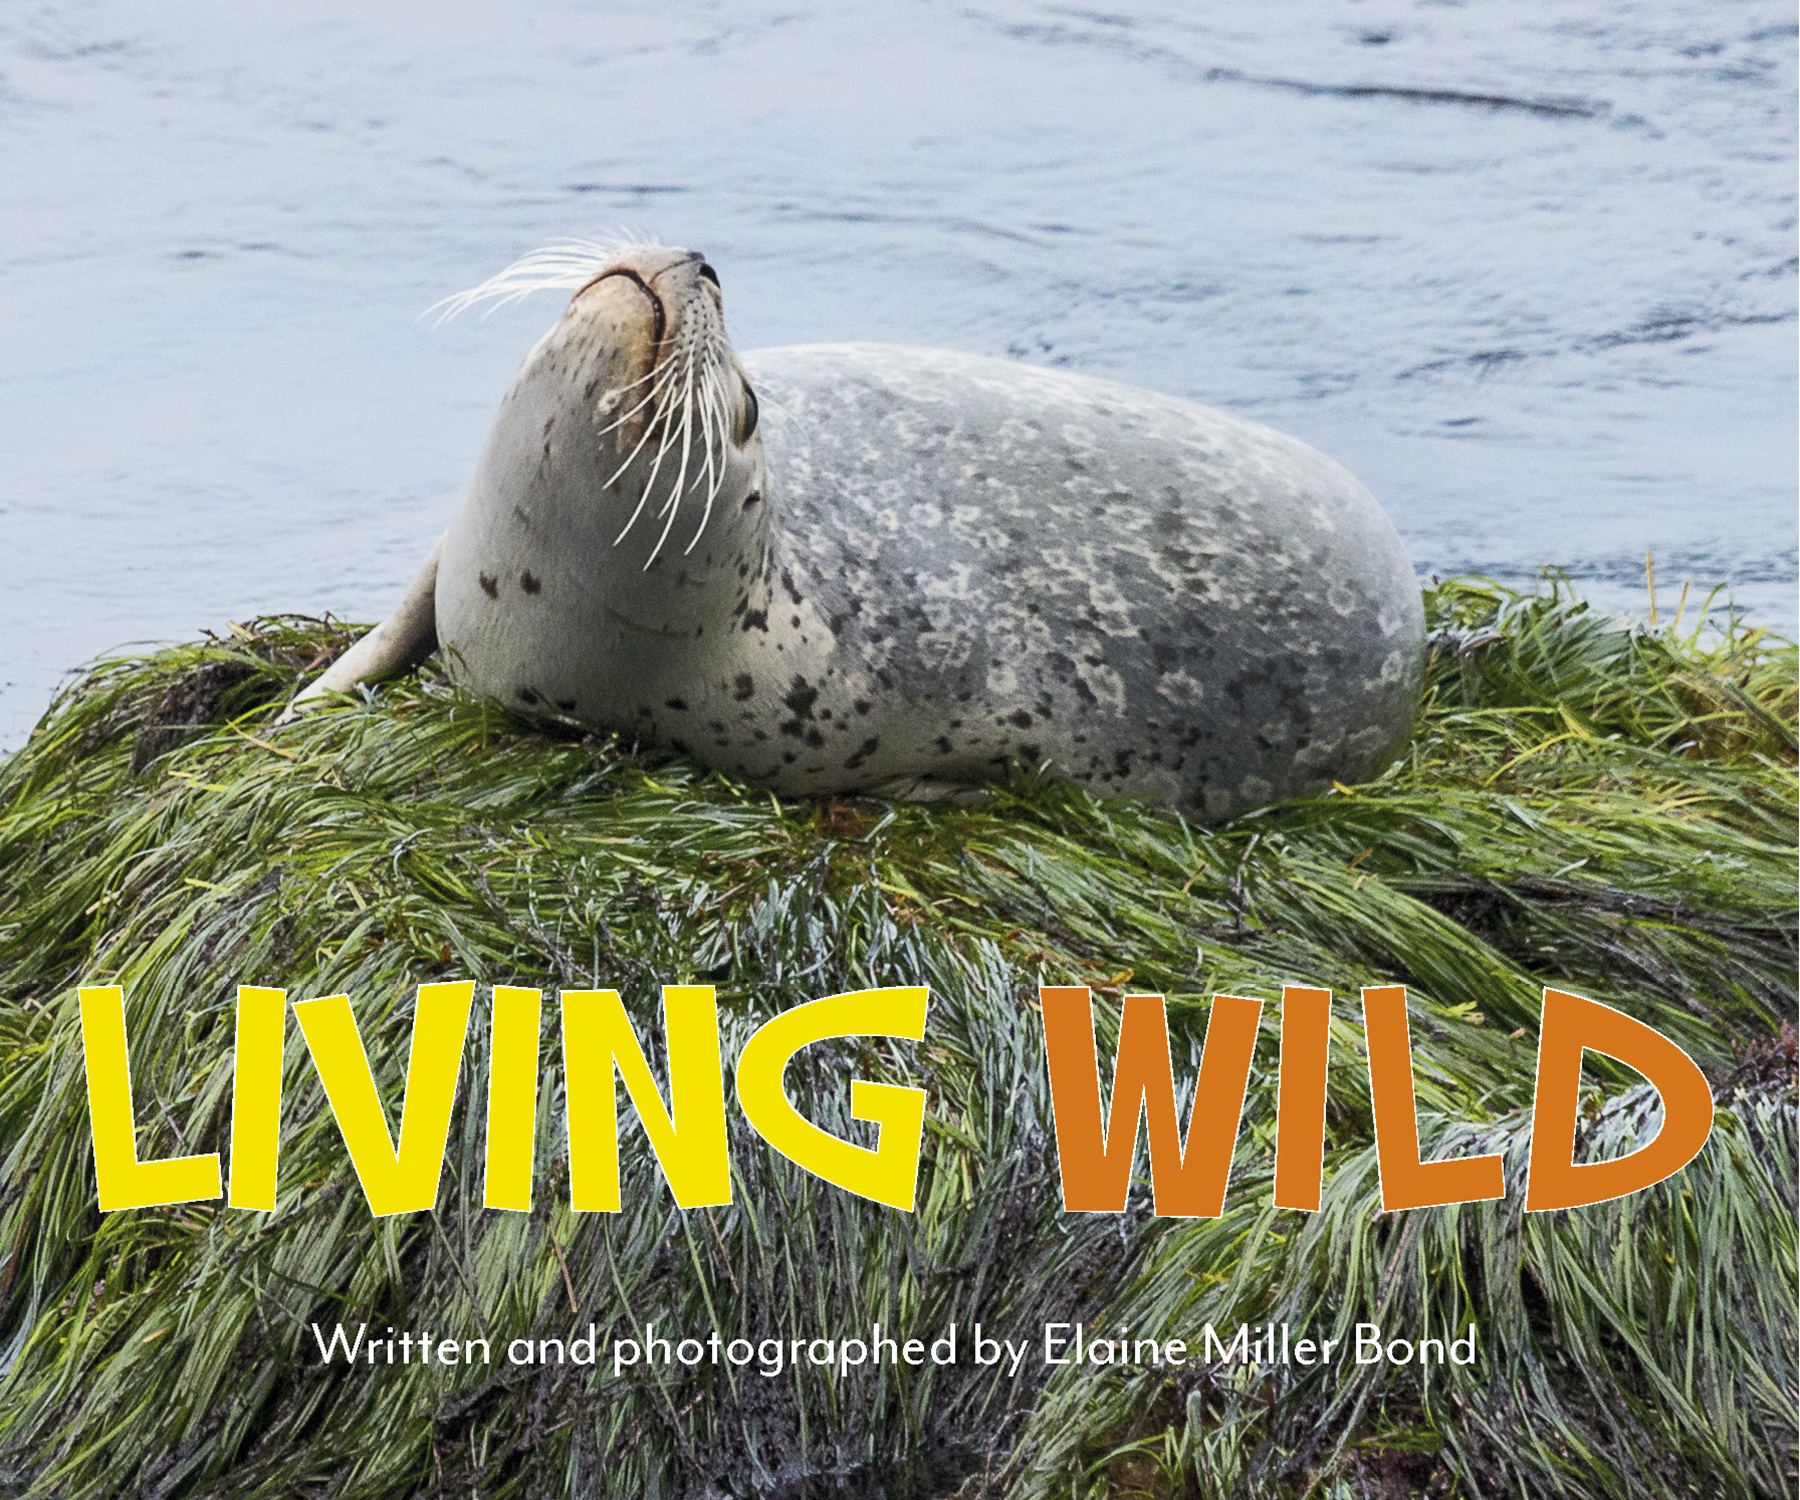 Living Wild  Written and photographed by Elaine Miller Bond Heyday Books (April 2017) ISBN: 978-1-59714-382-0